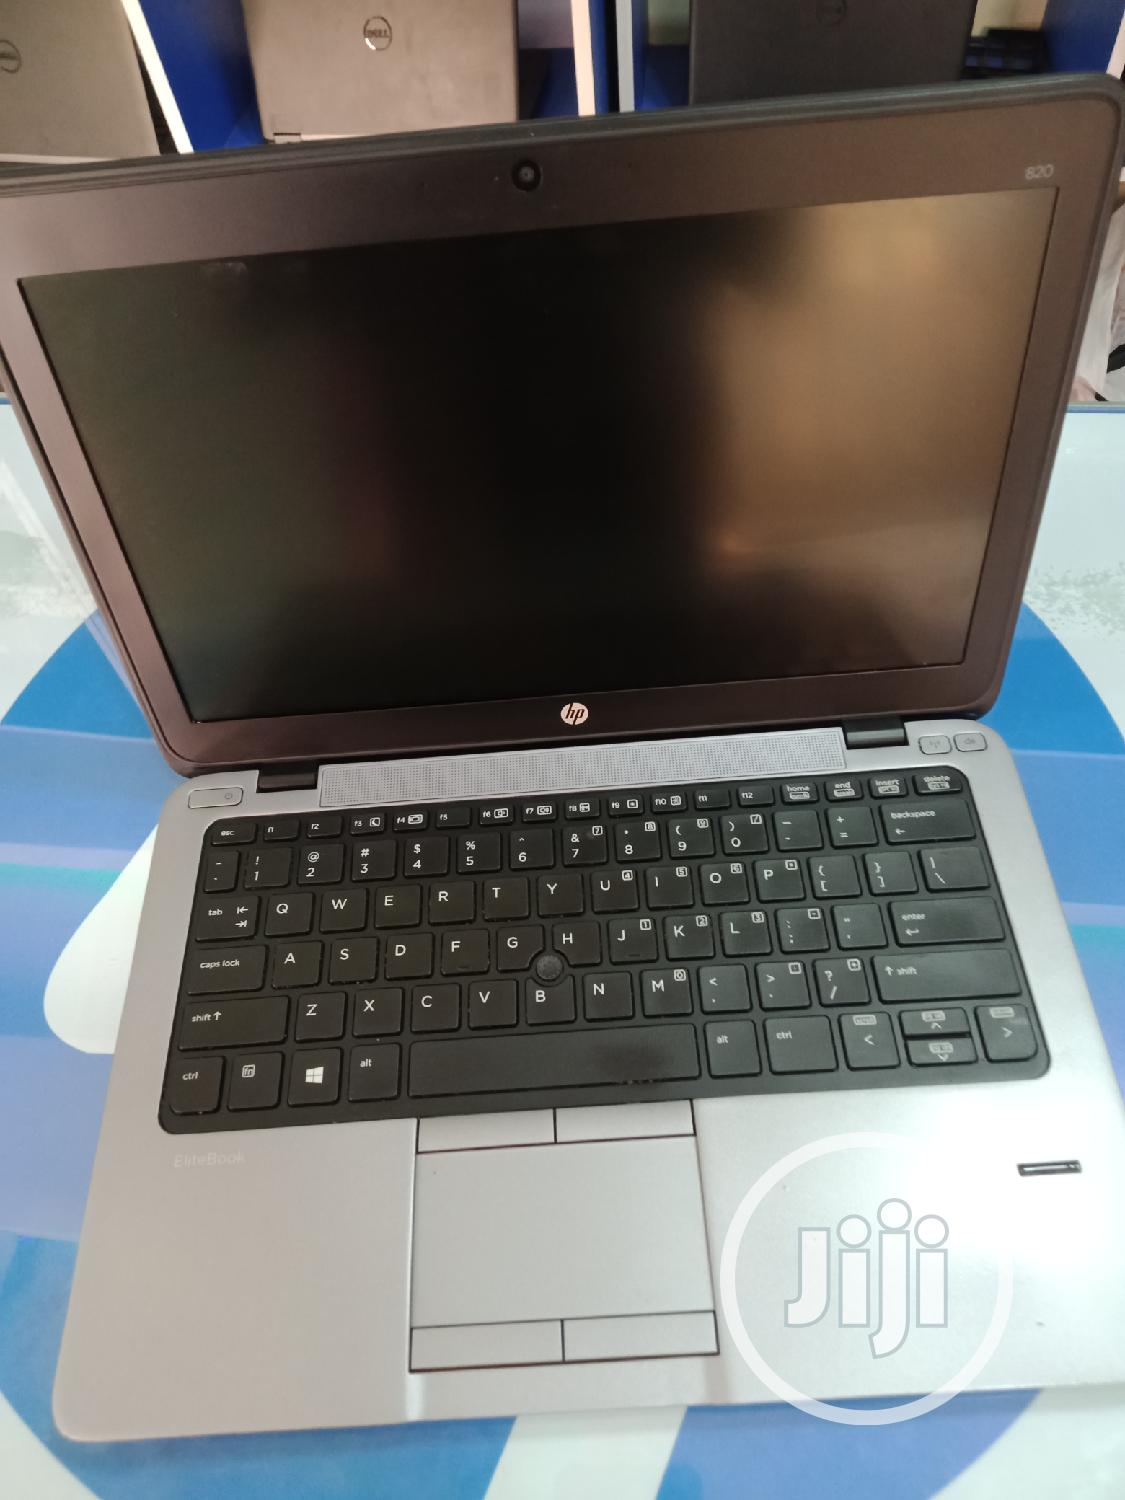 Laptop HP EliteBook 820 G1 4GB Intel Core I7 HDD 500GB | Laptops & Computers for sale in Wuse 2, Abuja (FCT) State, Nigeria